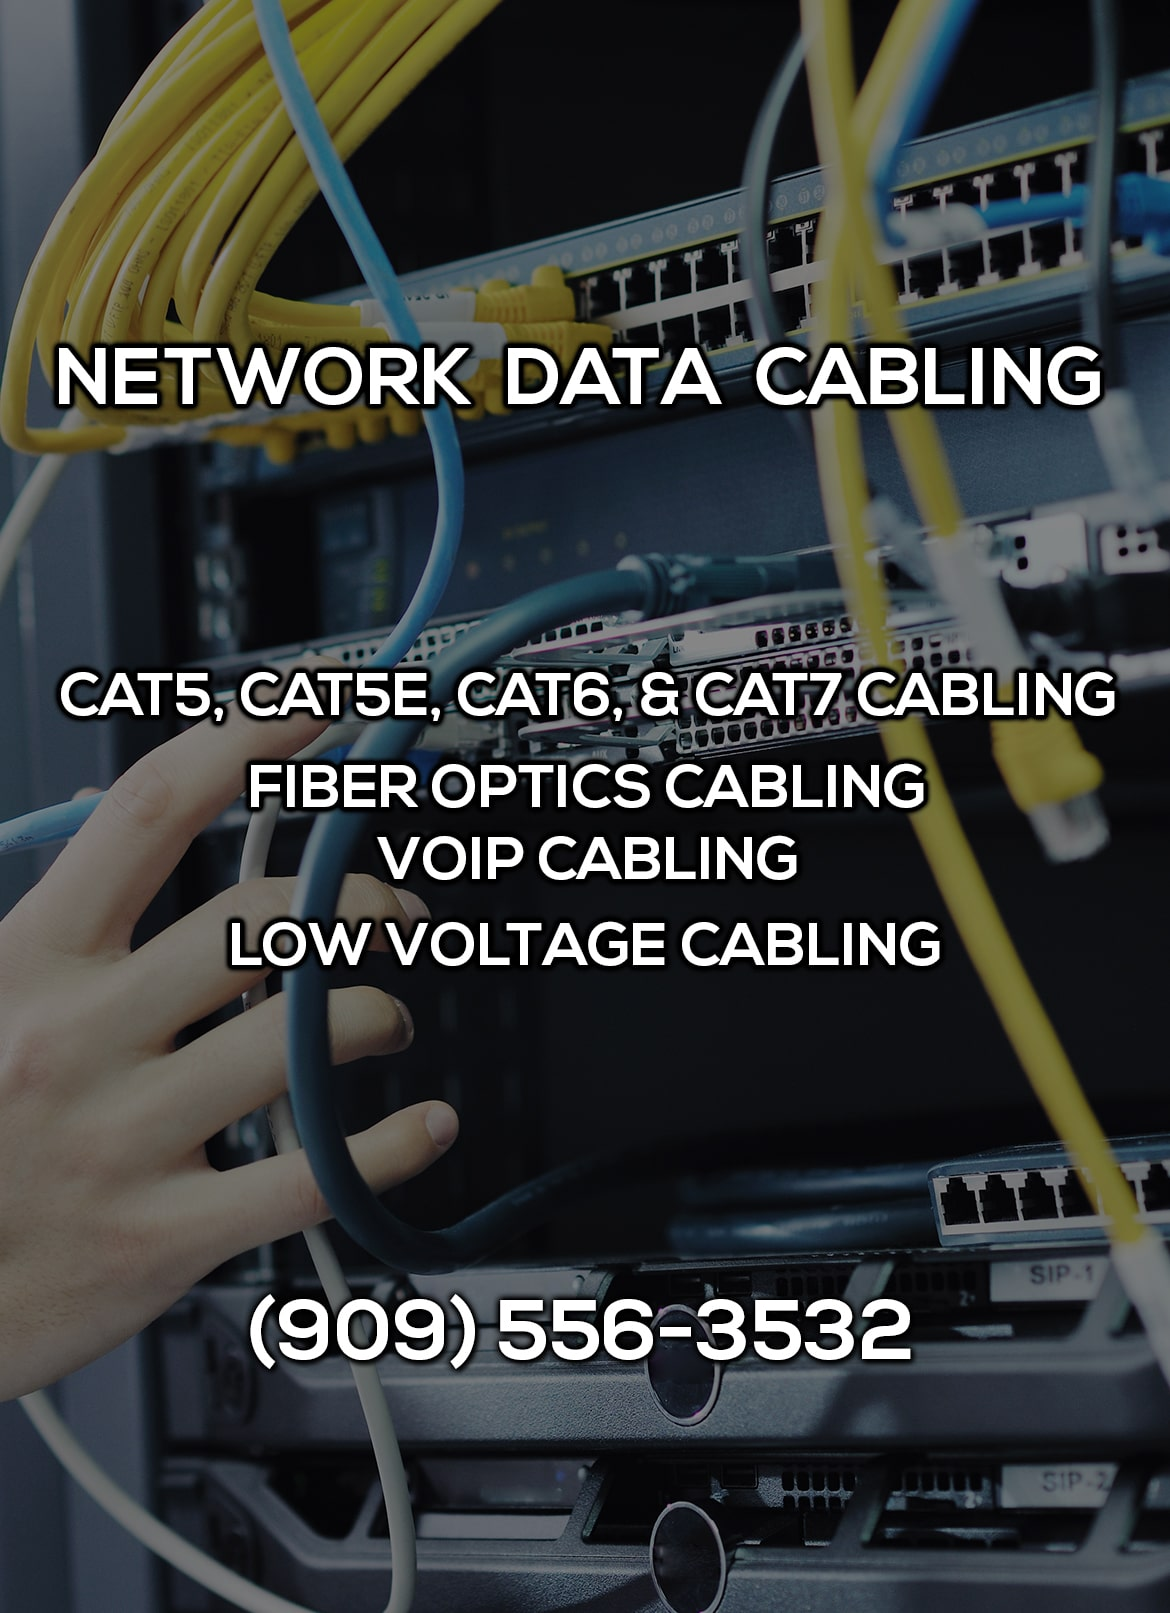 Network Data Cabling in Fontana CA